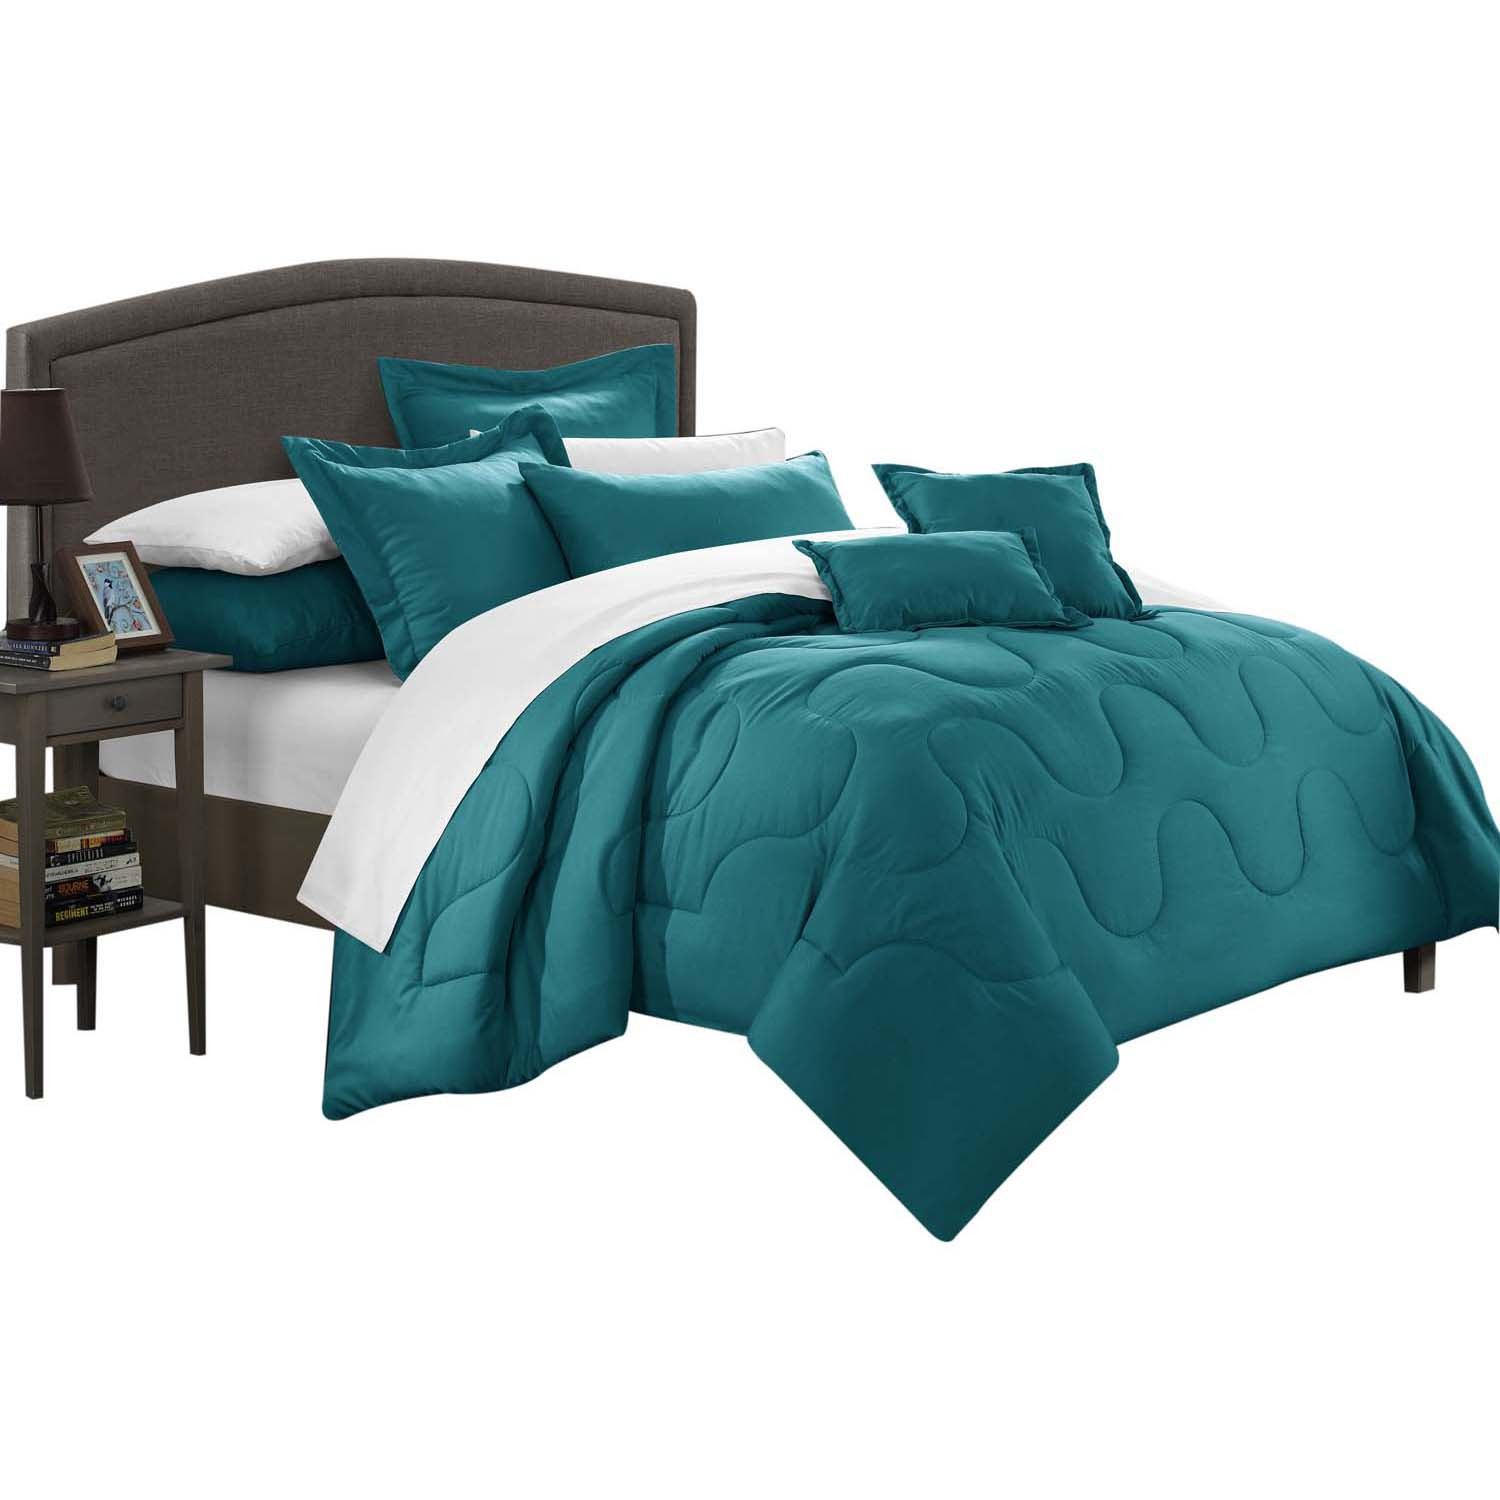 Dinarelle Donna Jacquard 7 Piece Comforter Bed In A Bag King Teal